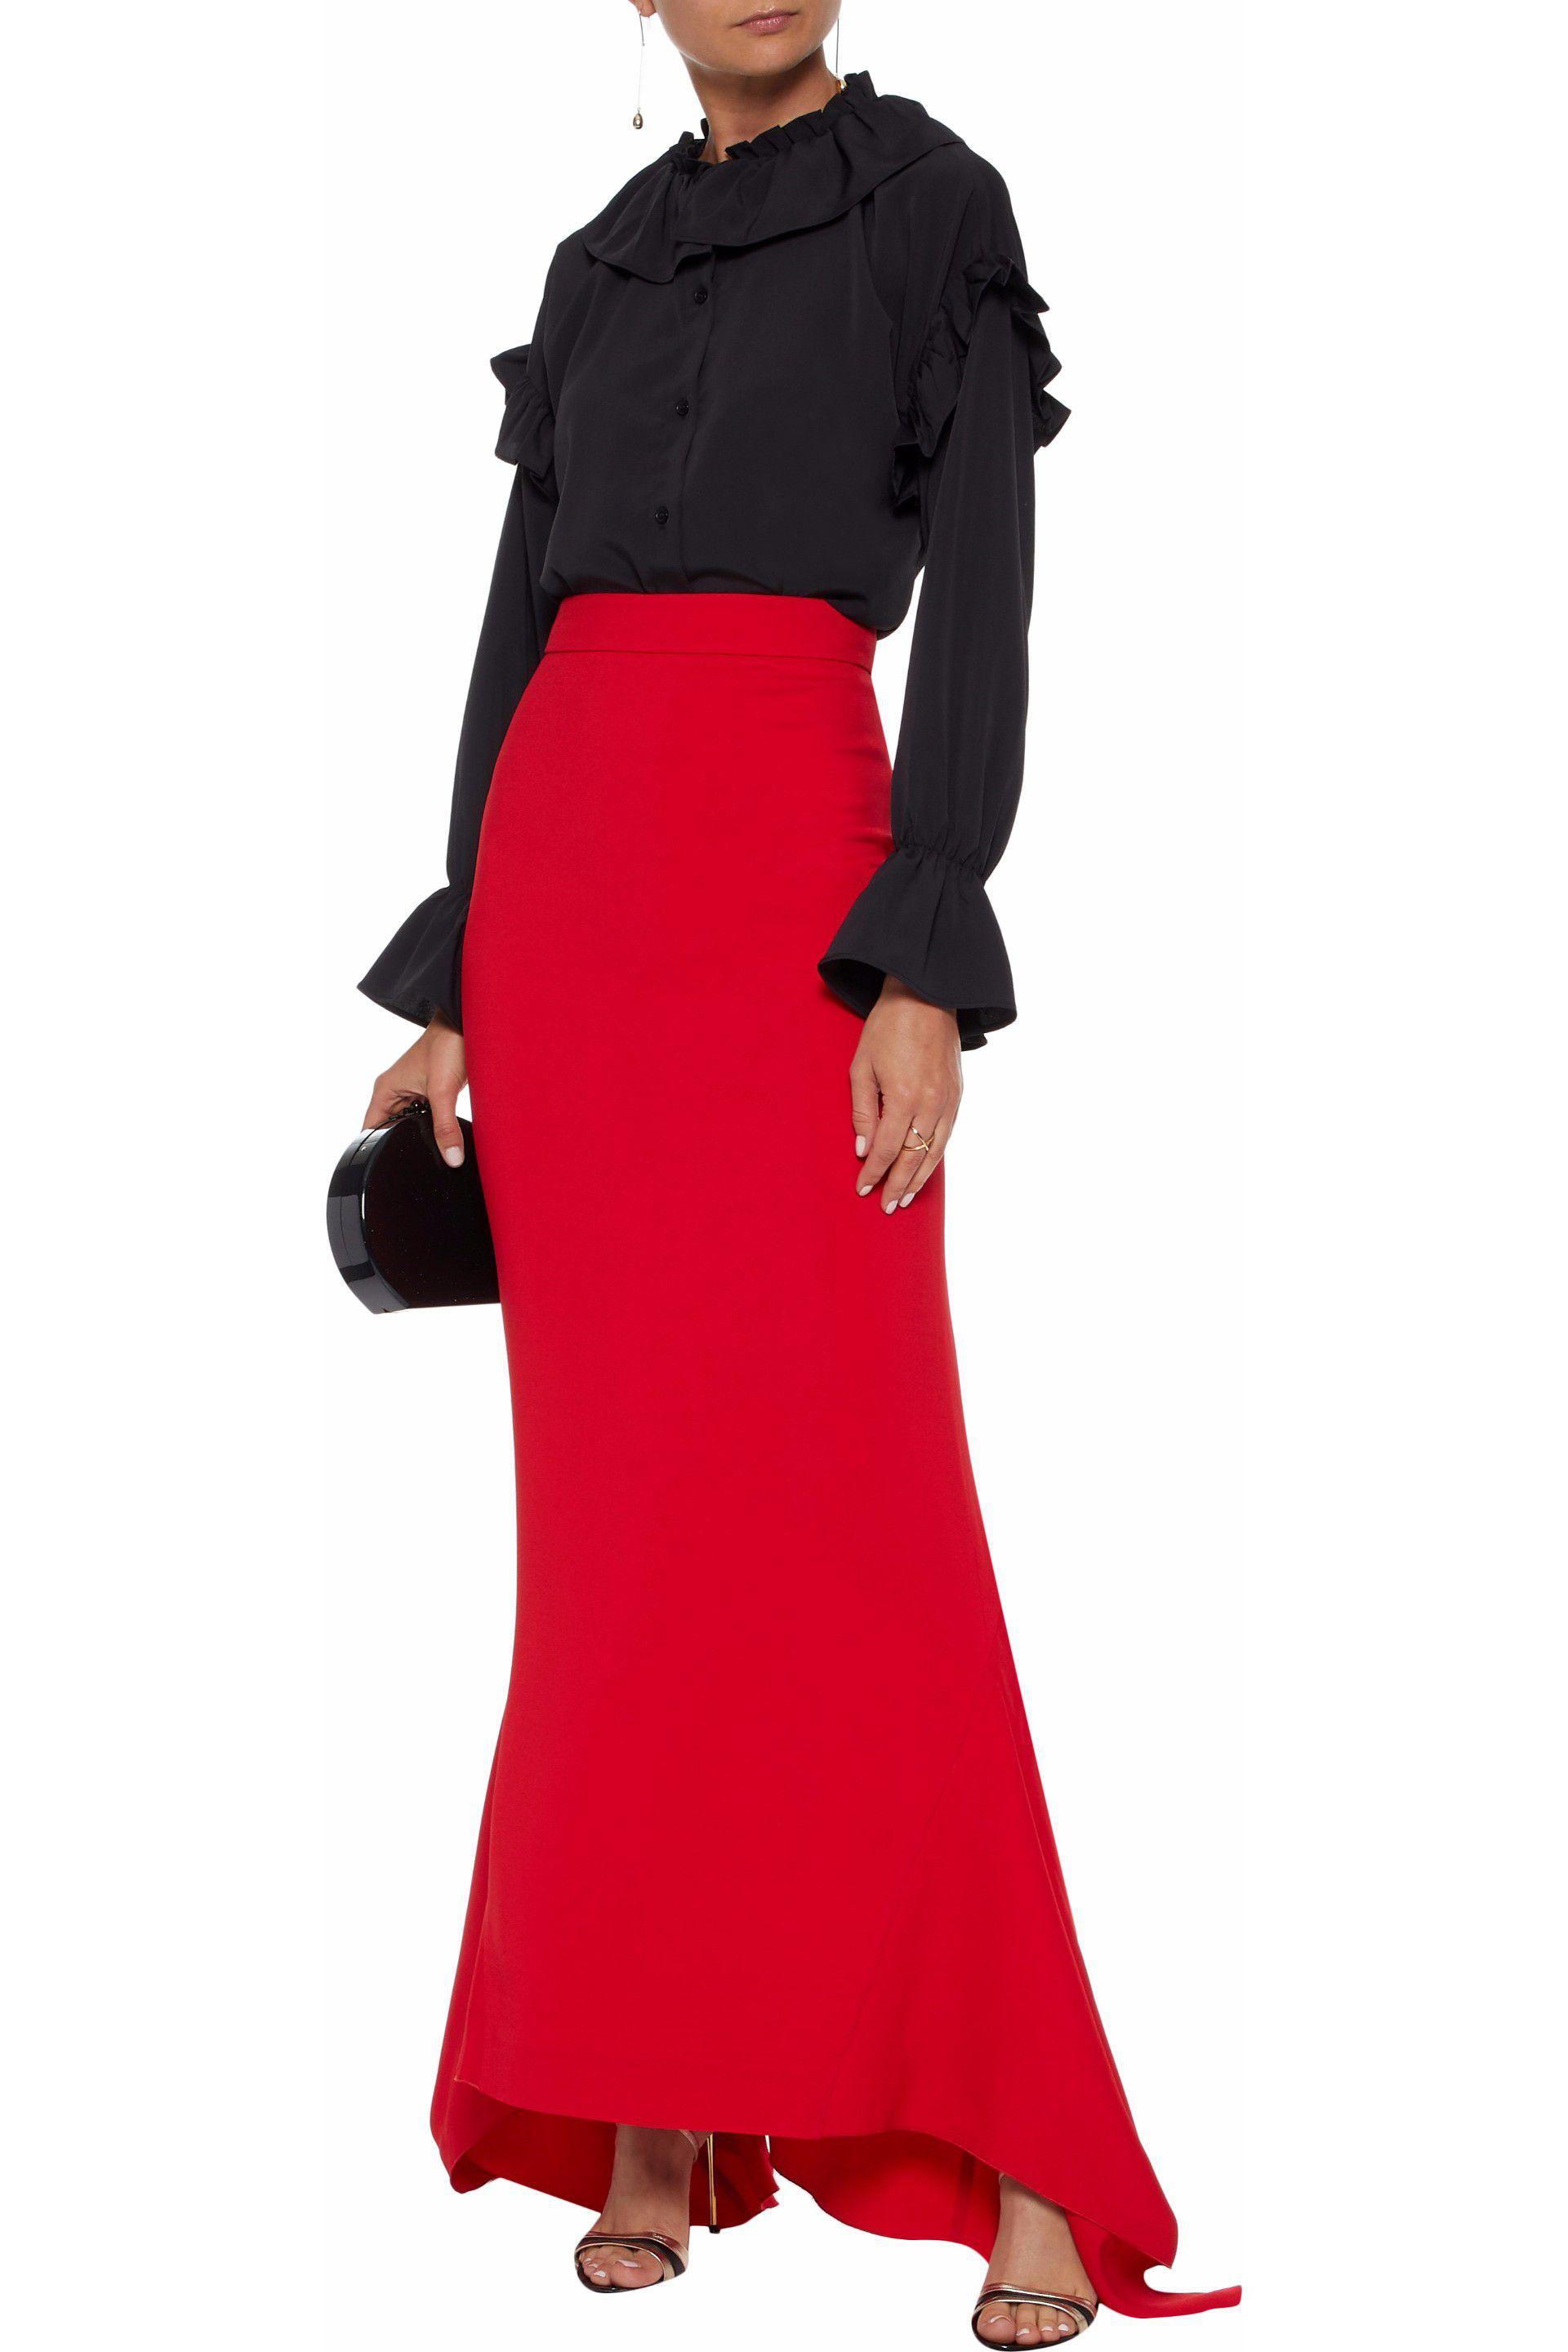 5dc5d8f103 Antonio Berardi - Red Fluted Stretch-crepe Maxi Skirt - Lyst. View  fullscreen